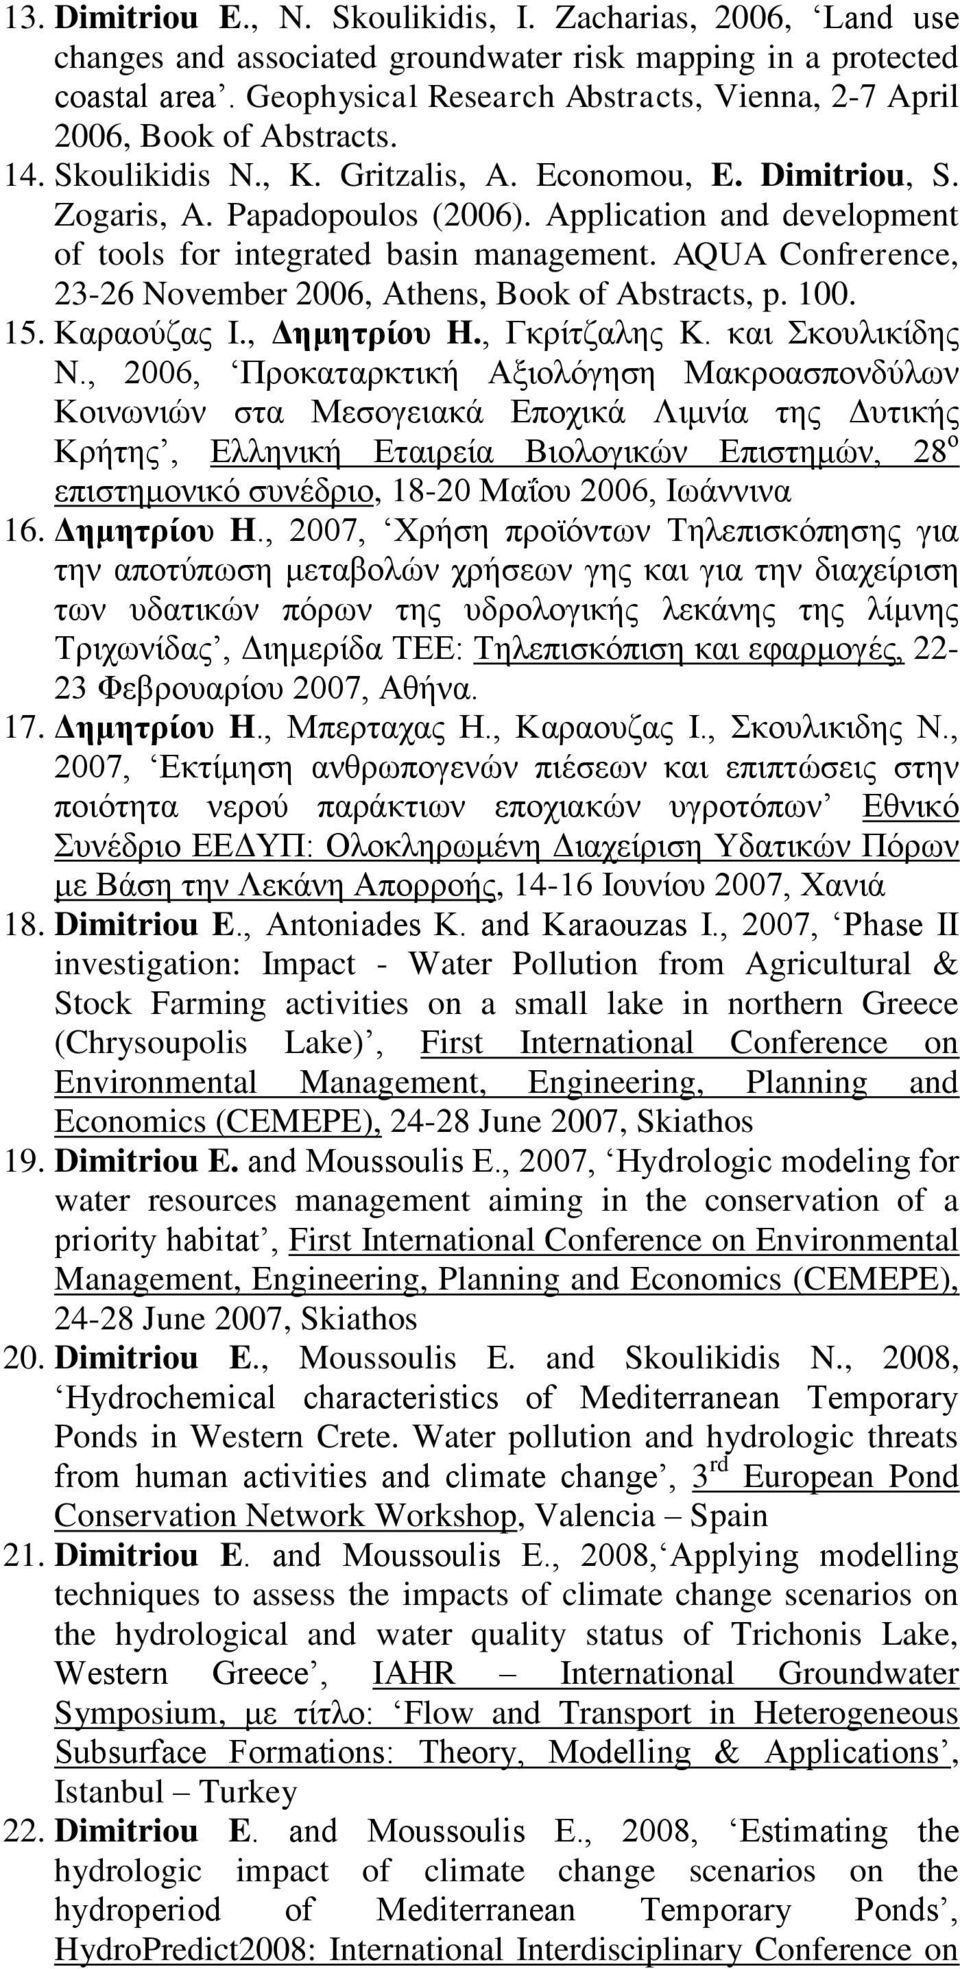 Αpplication and development of tools for integrated basin management. AQUA Confrerence, 23-26 November 2006, Αthens, Book of Abstracts, p. 100. 15. Καραούζας I., Δημητρίου H., Γκρίτζαλης K.